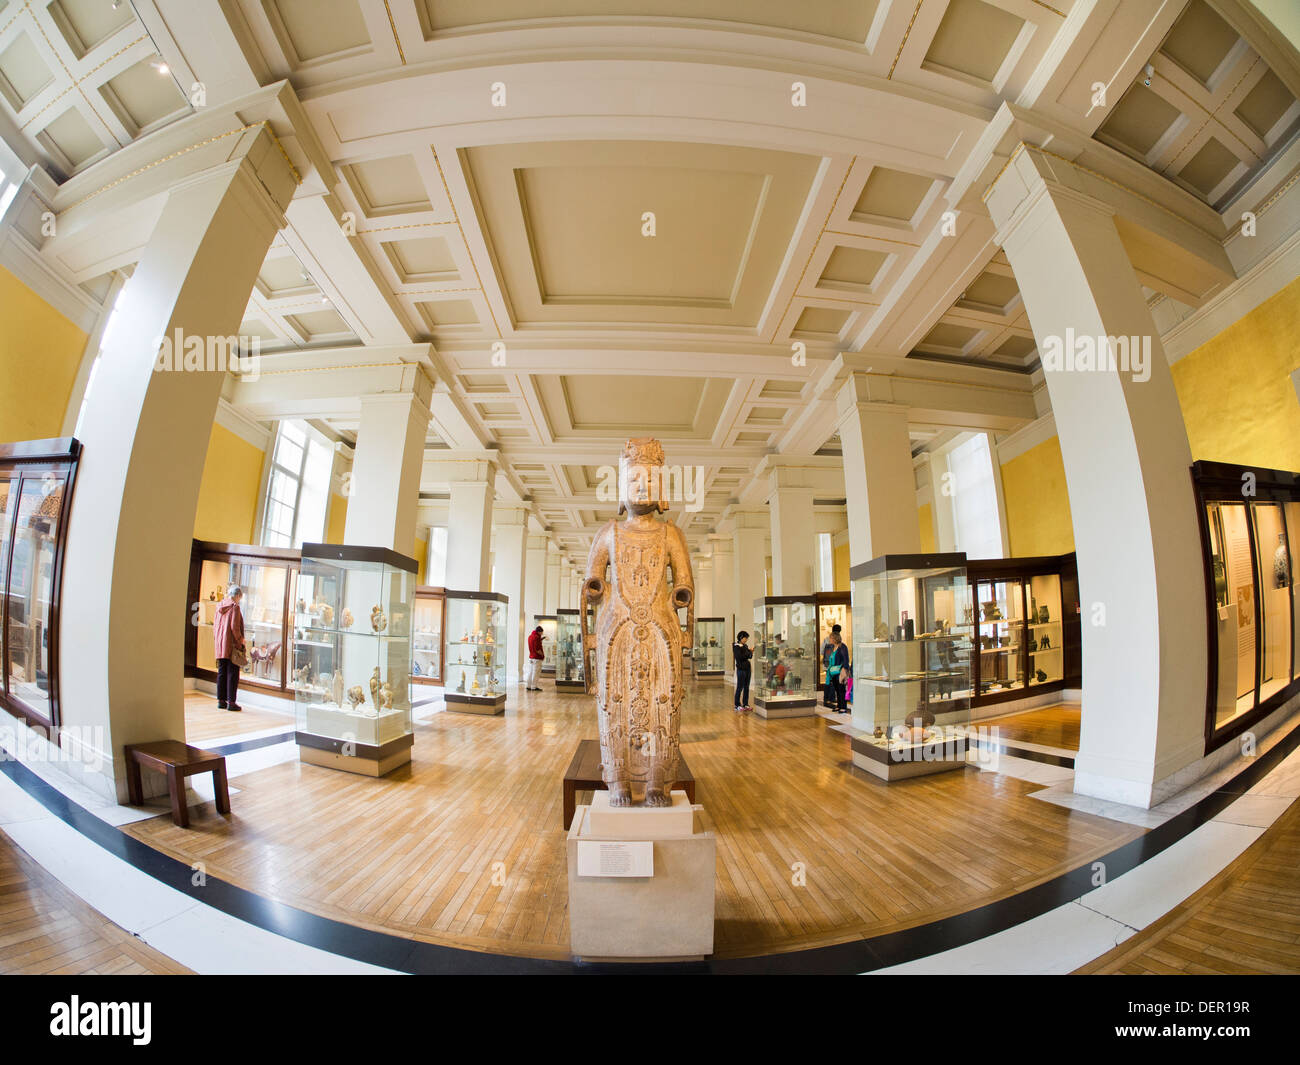 The British Museum, London - gallery of Asian and Chinese antiquities - Stock Image